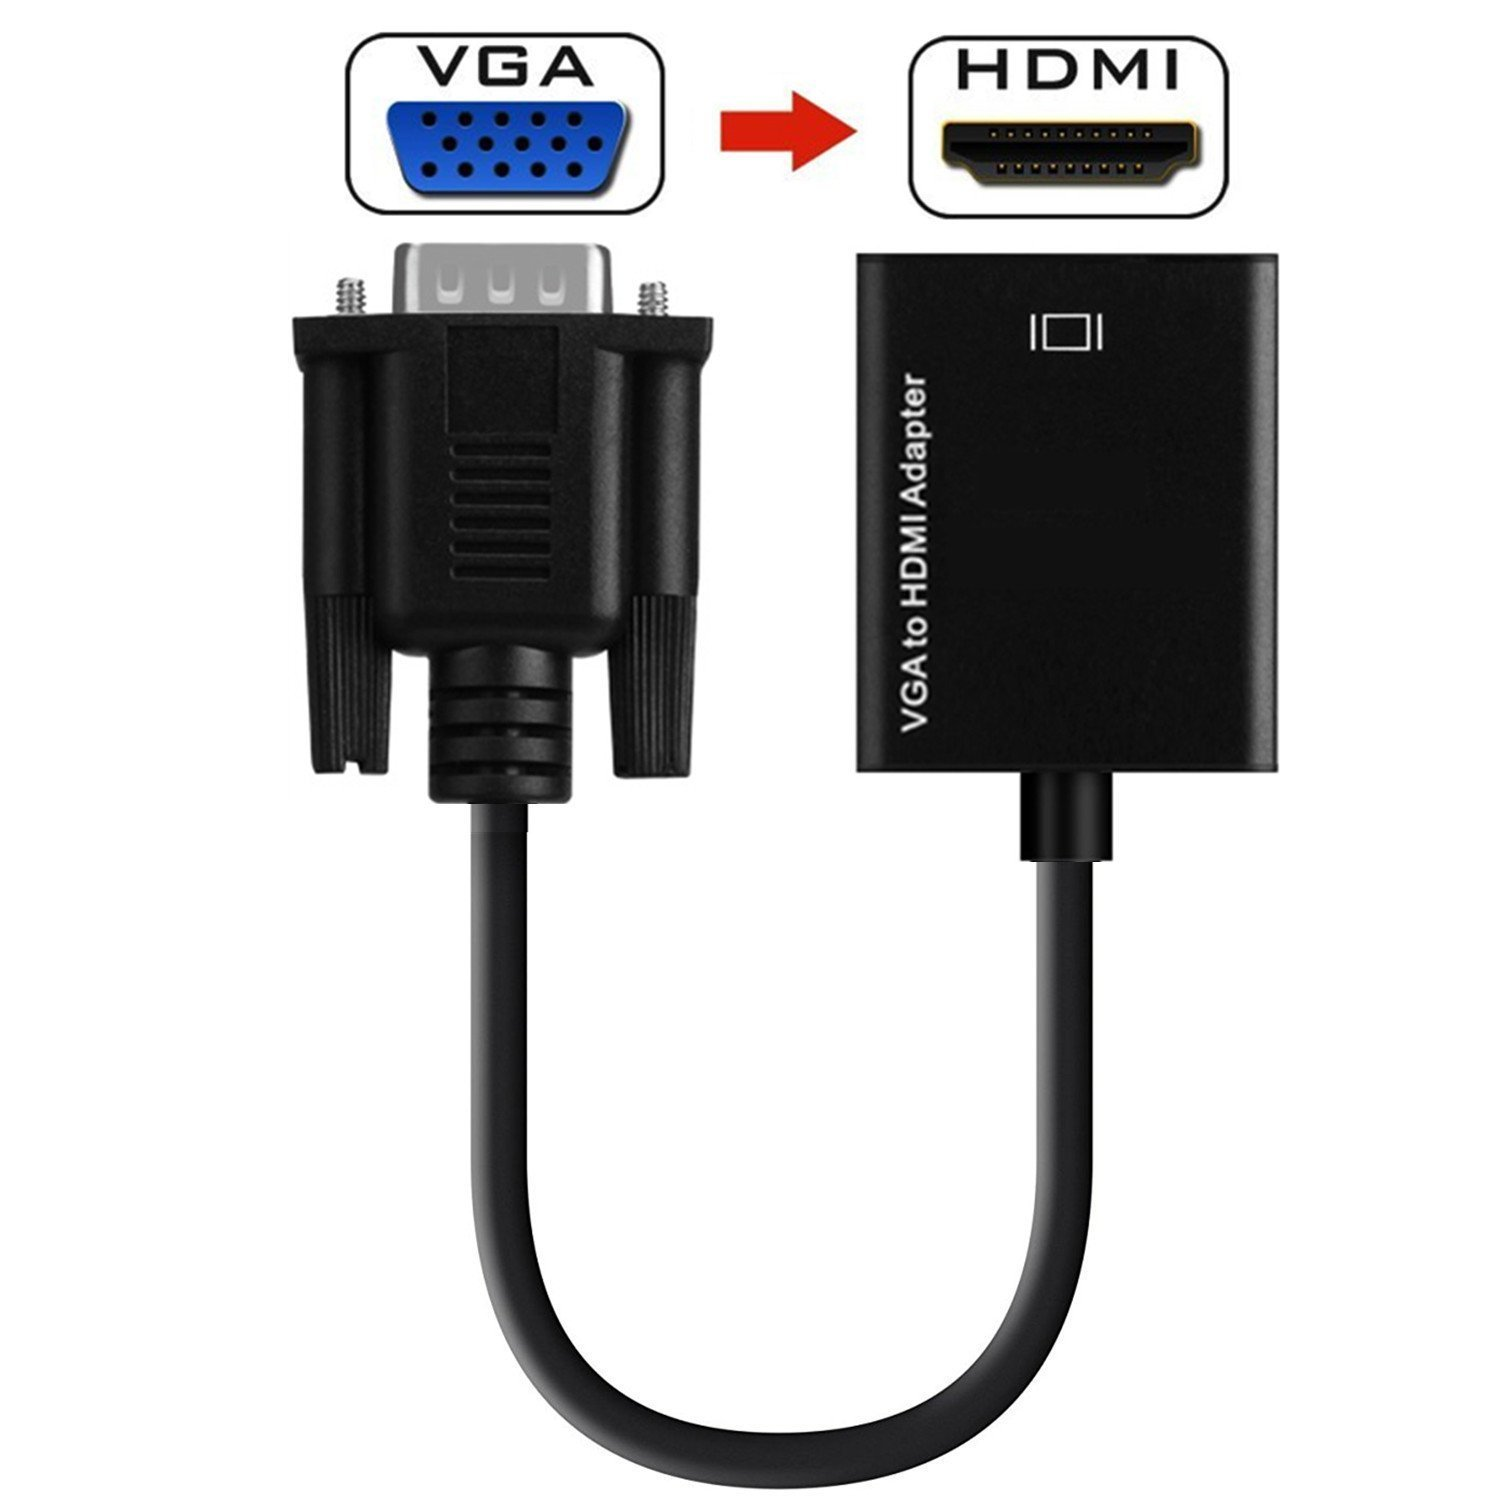 VGA to HDMI Adapter YUAWEE Plug and Play1080P HD Audio TV AV HDTV Video Cable with Audio HDMI to VGA Adapter with 3.5mm Audio Jack HDMI Female to VGA Male Converter for TV Stick Raspberry Pi, Laptop